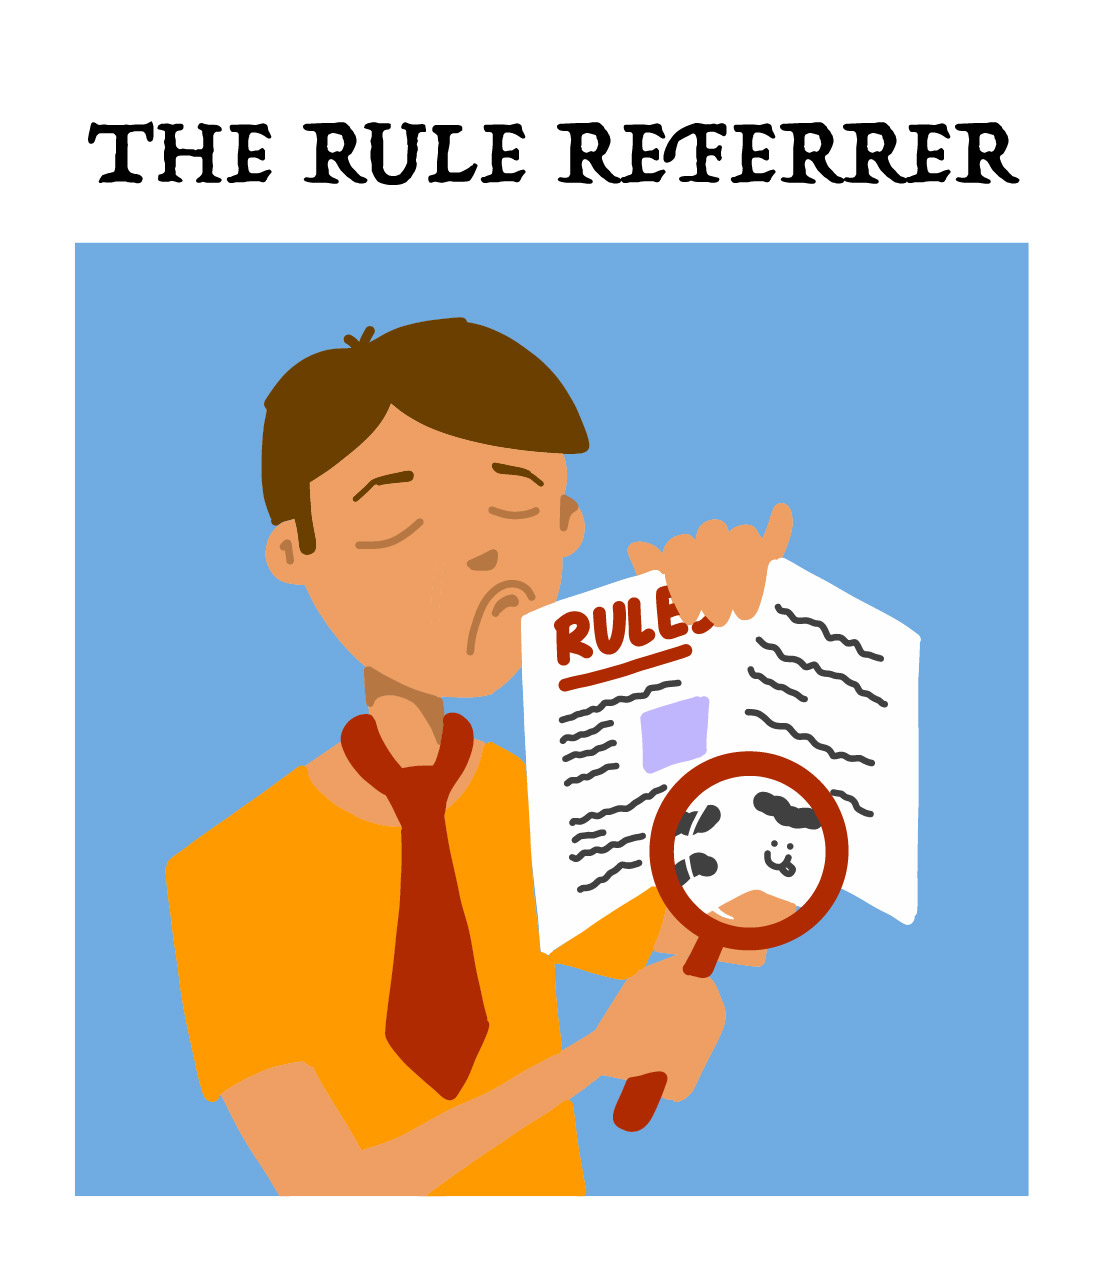 the rule referrer, type two of nine board game players